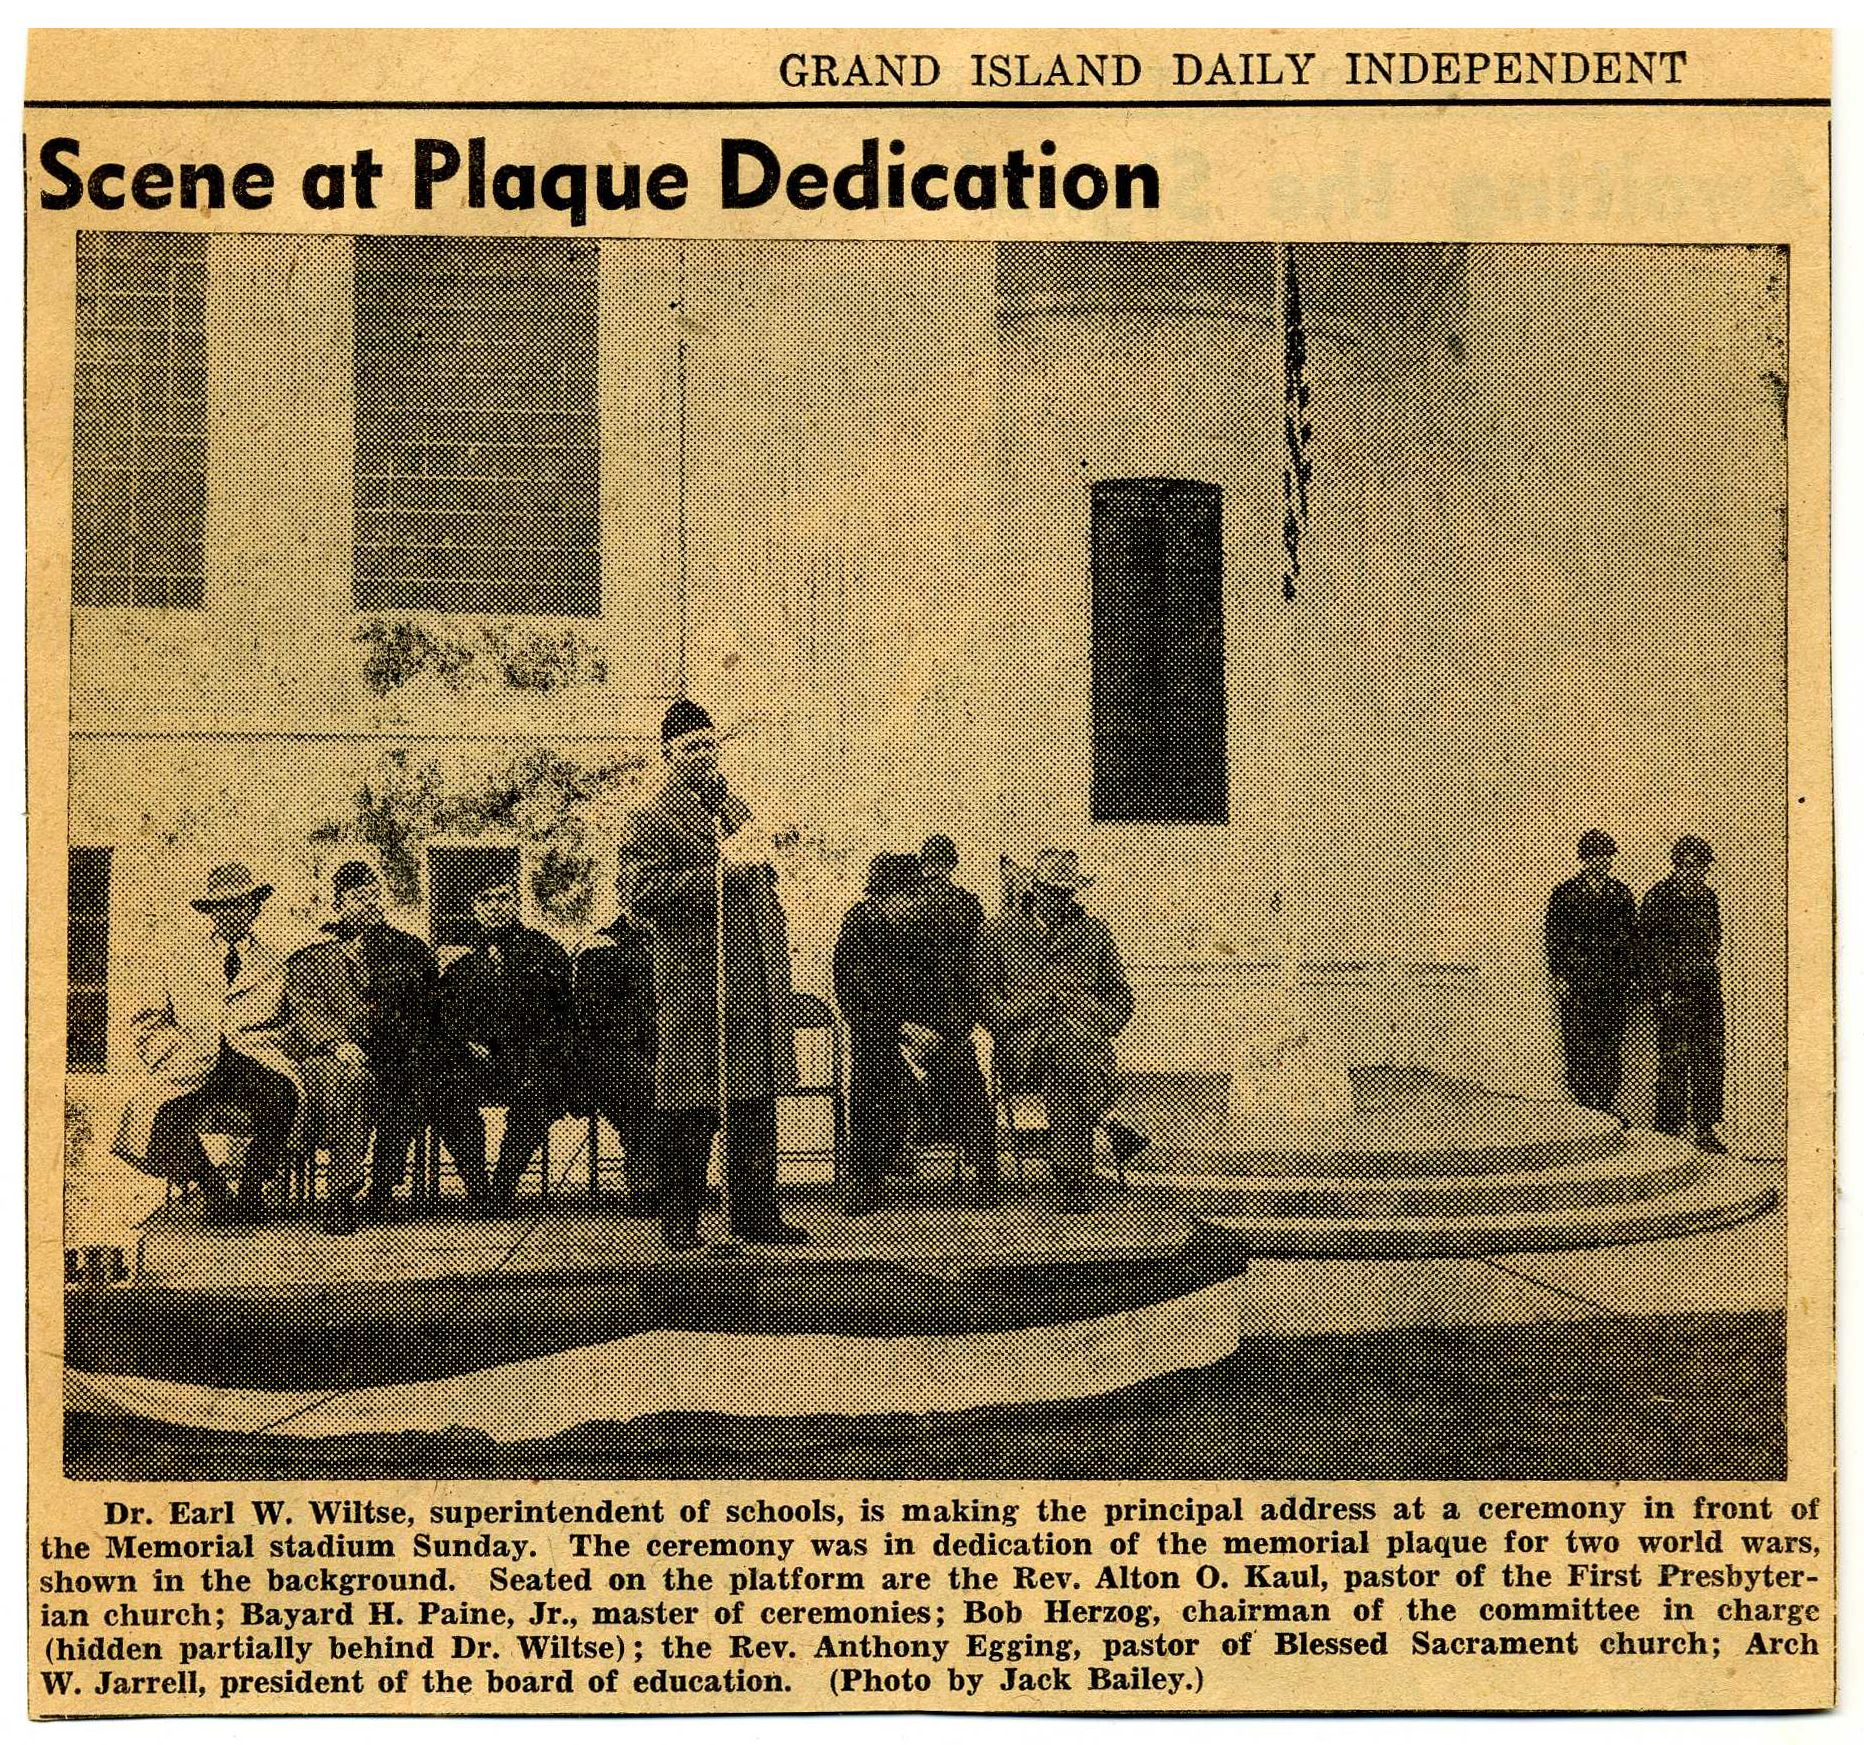 November 1950: Memorial Plaque is Unveiled